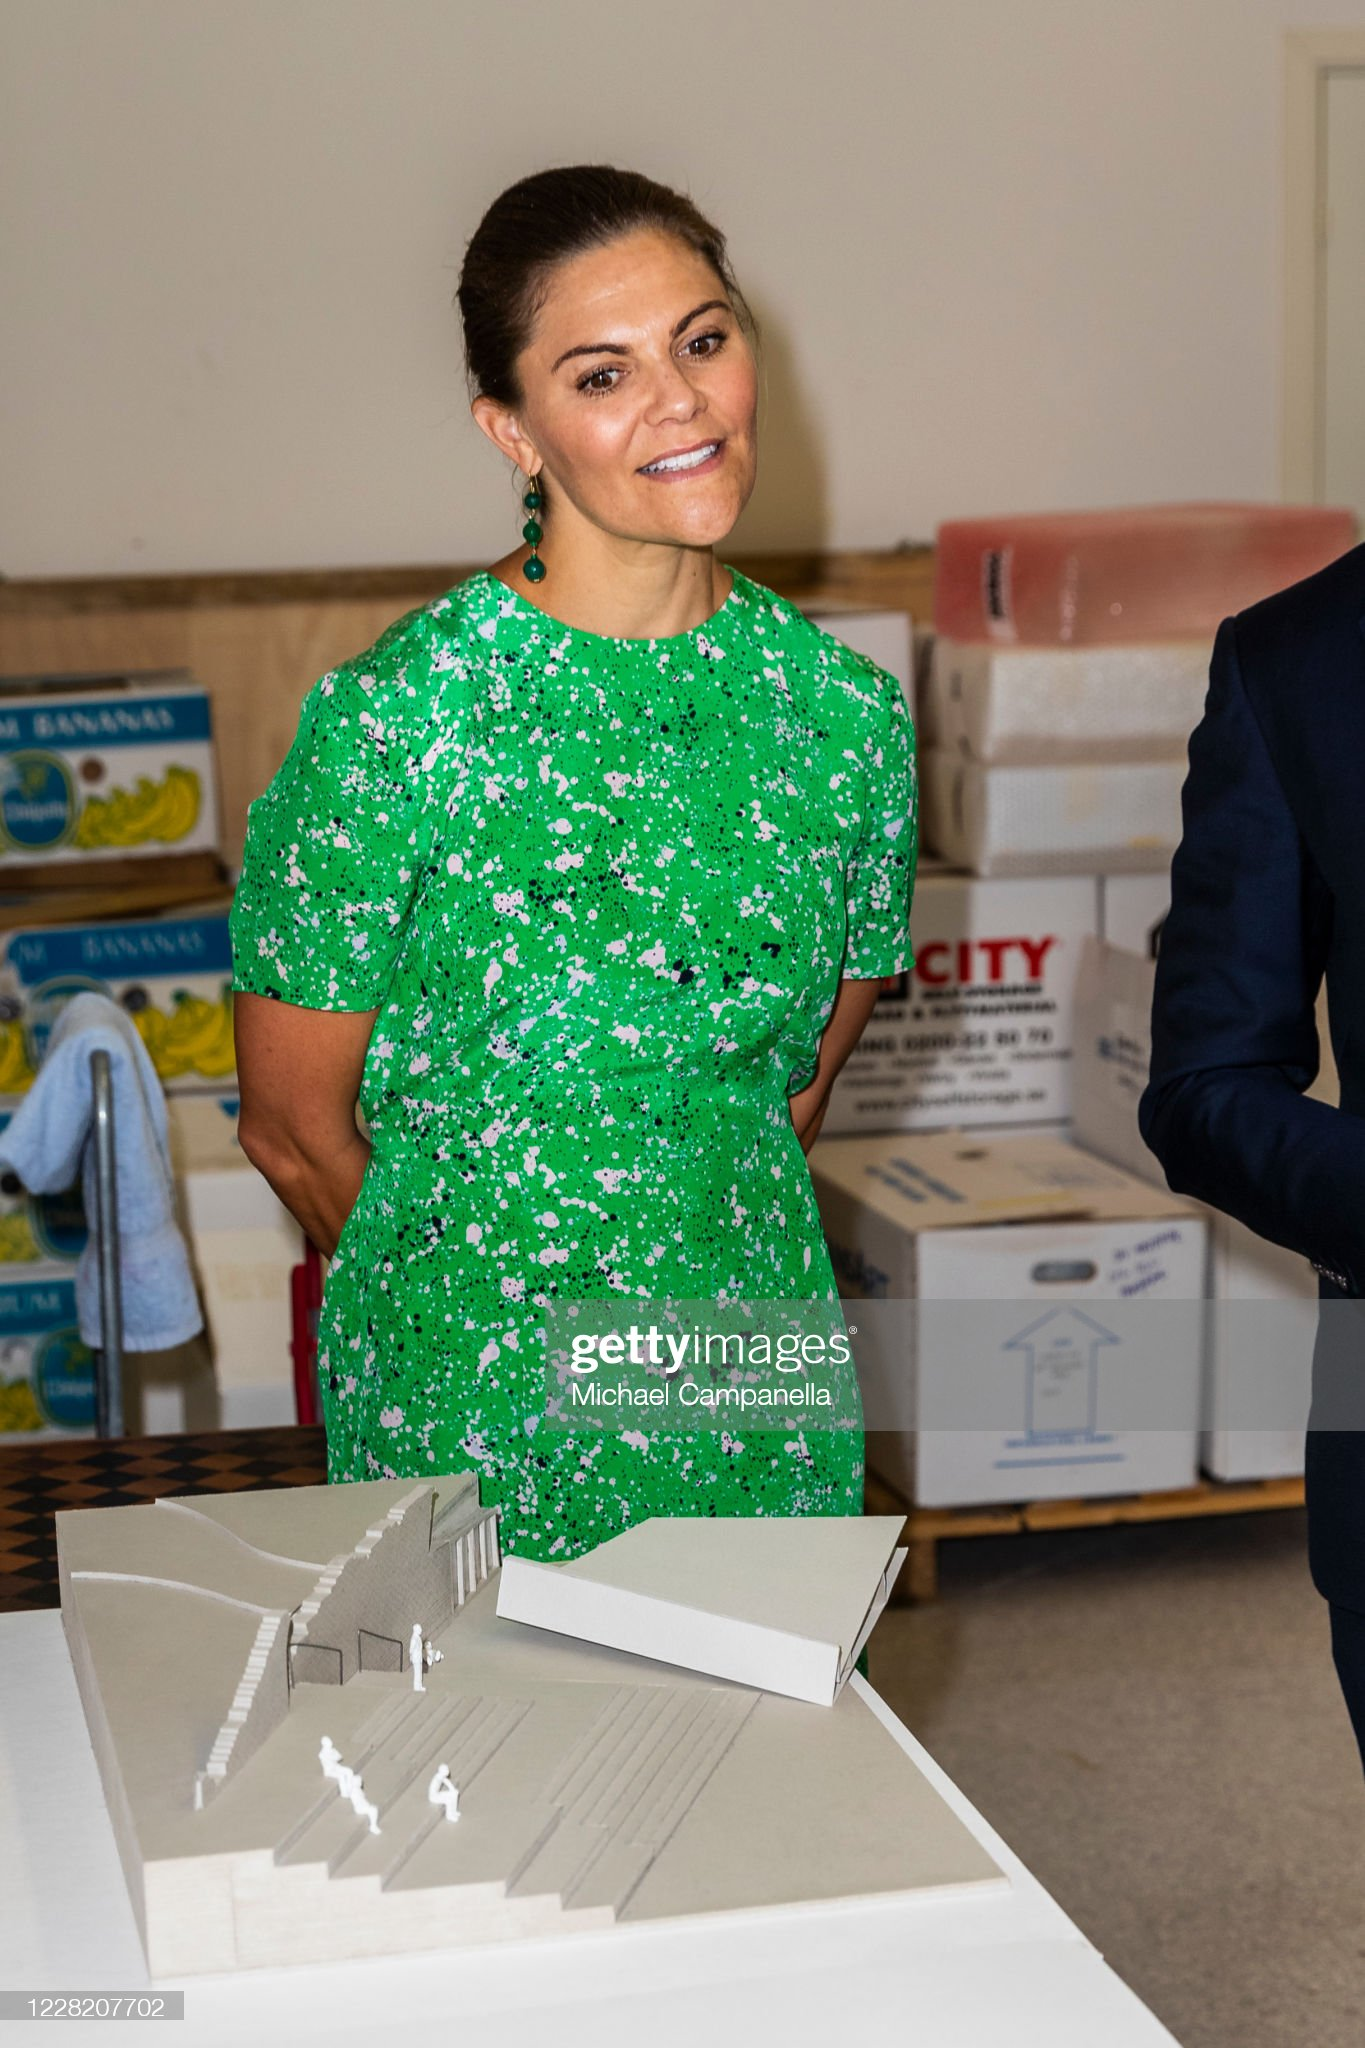 crown-princess-victoria-of-sweden-visits-the-artist-organization-on-picture-id1228207702